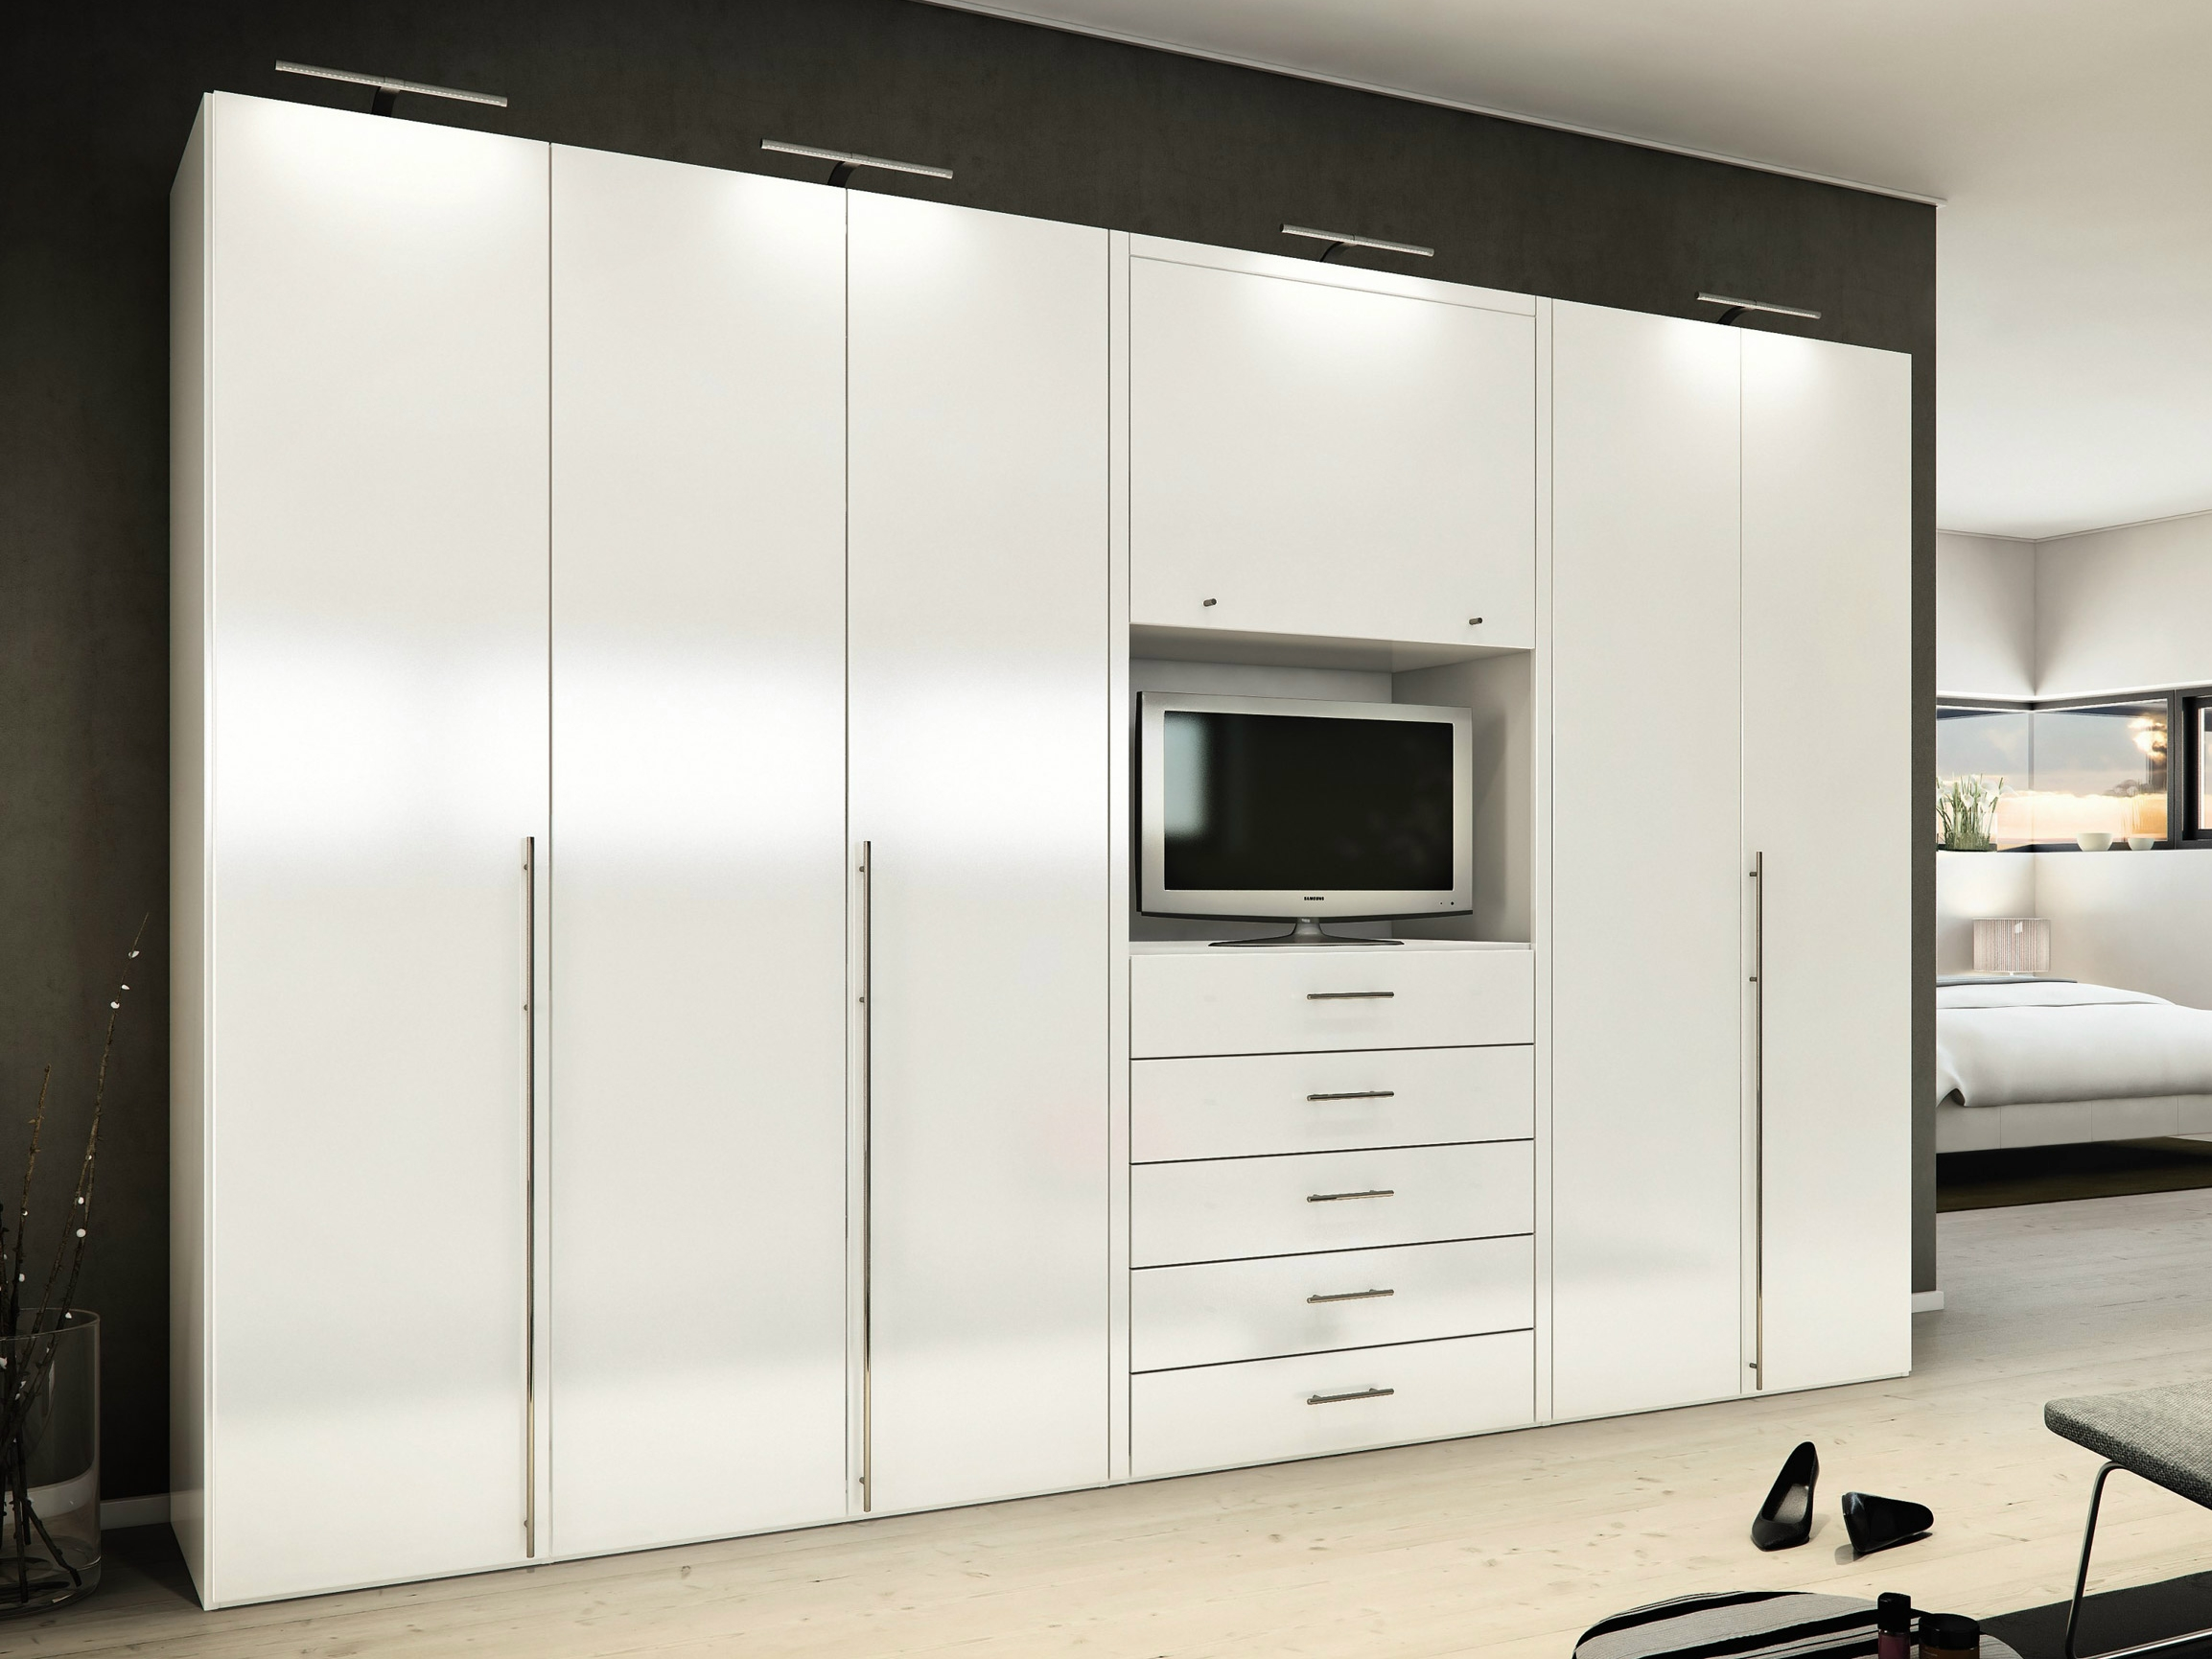 Bedroom Ideas Furniture Mesmerizing White High Gloss Built In Intended For Wardrobe With Drawers And Shelves (View 7 of 15)